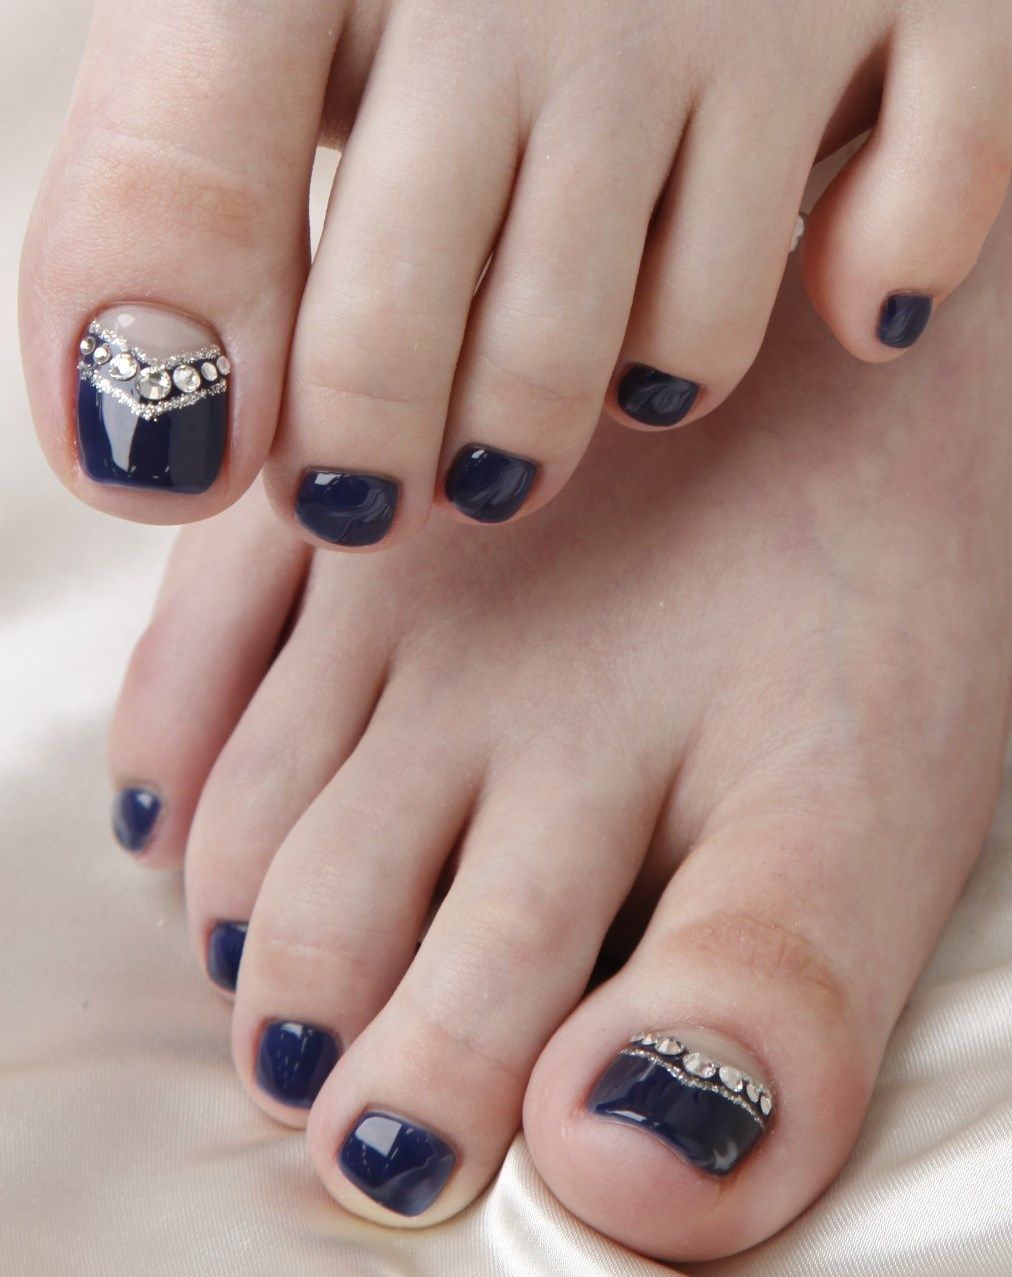 12 Nail Art Ideas For Your Toes | Pedicures, Nail design and Nail ...